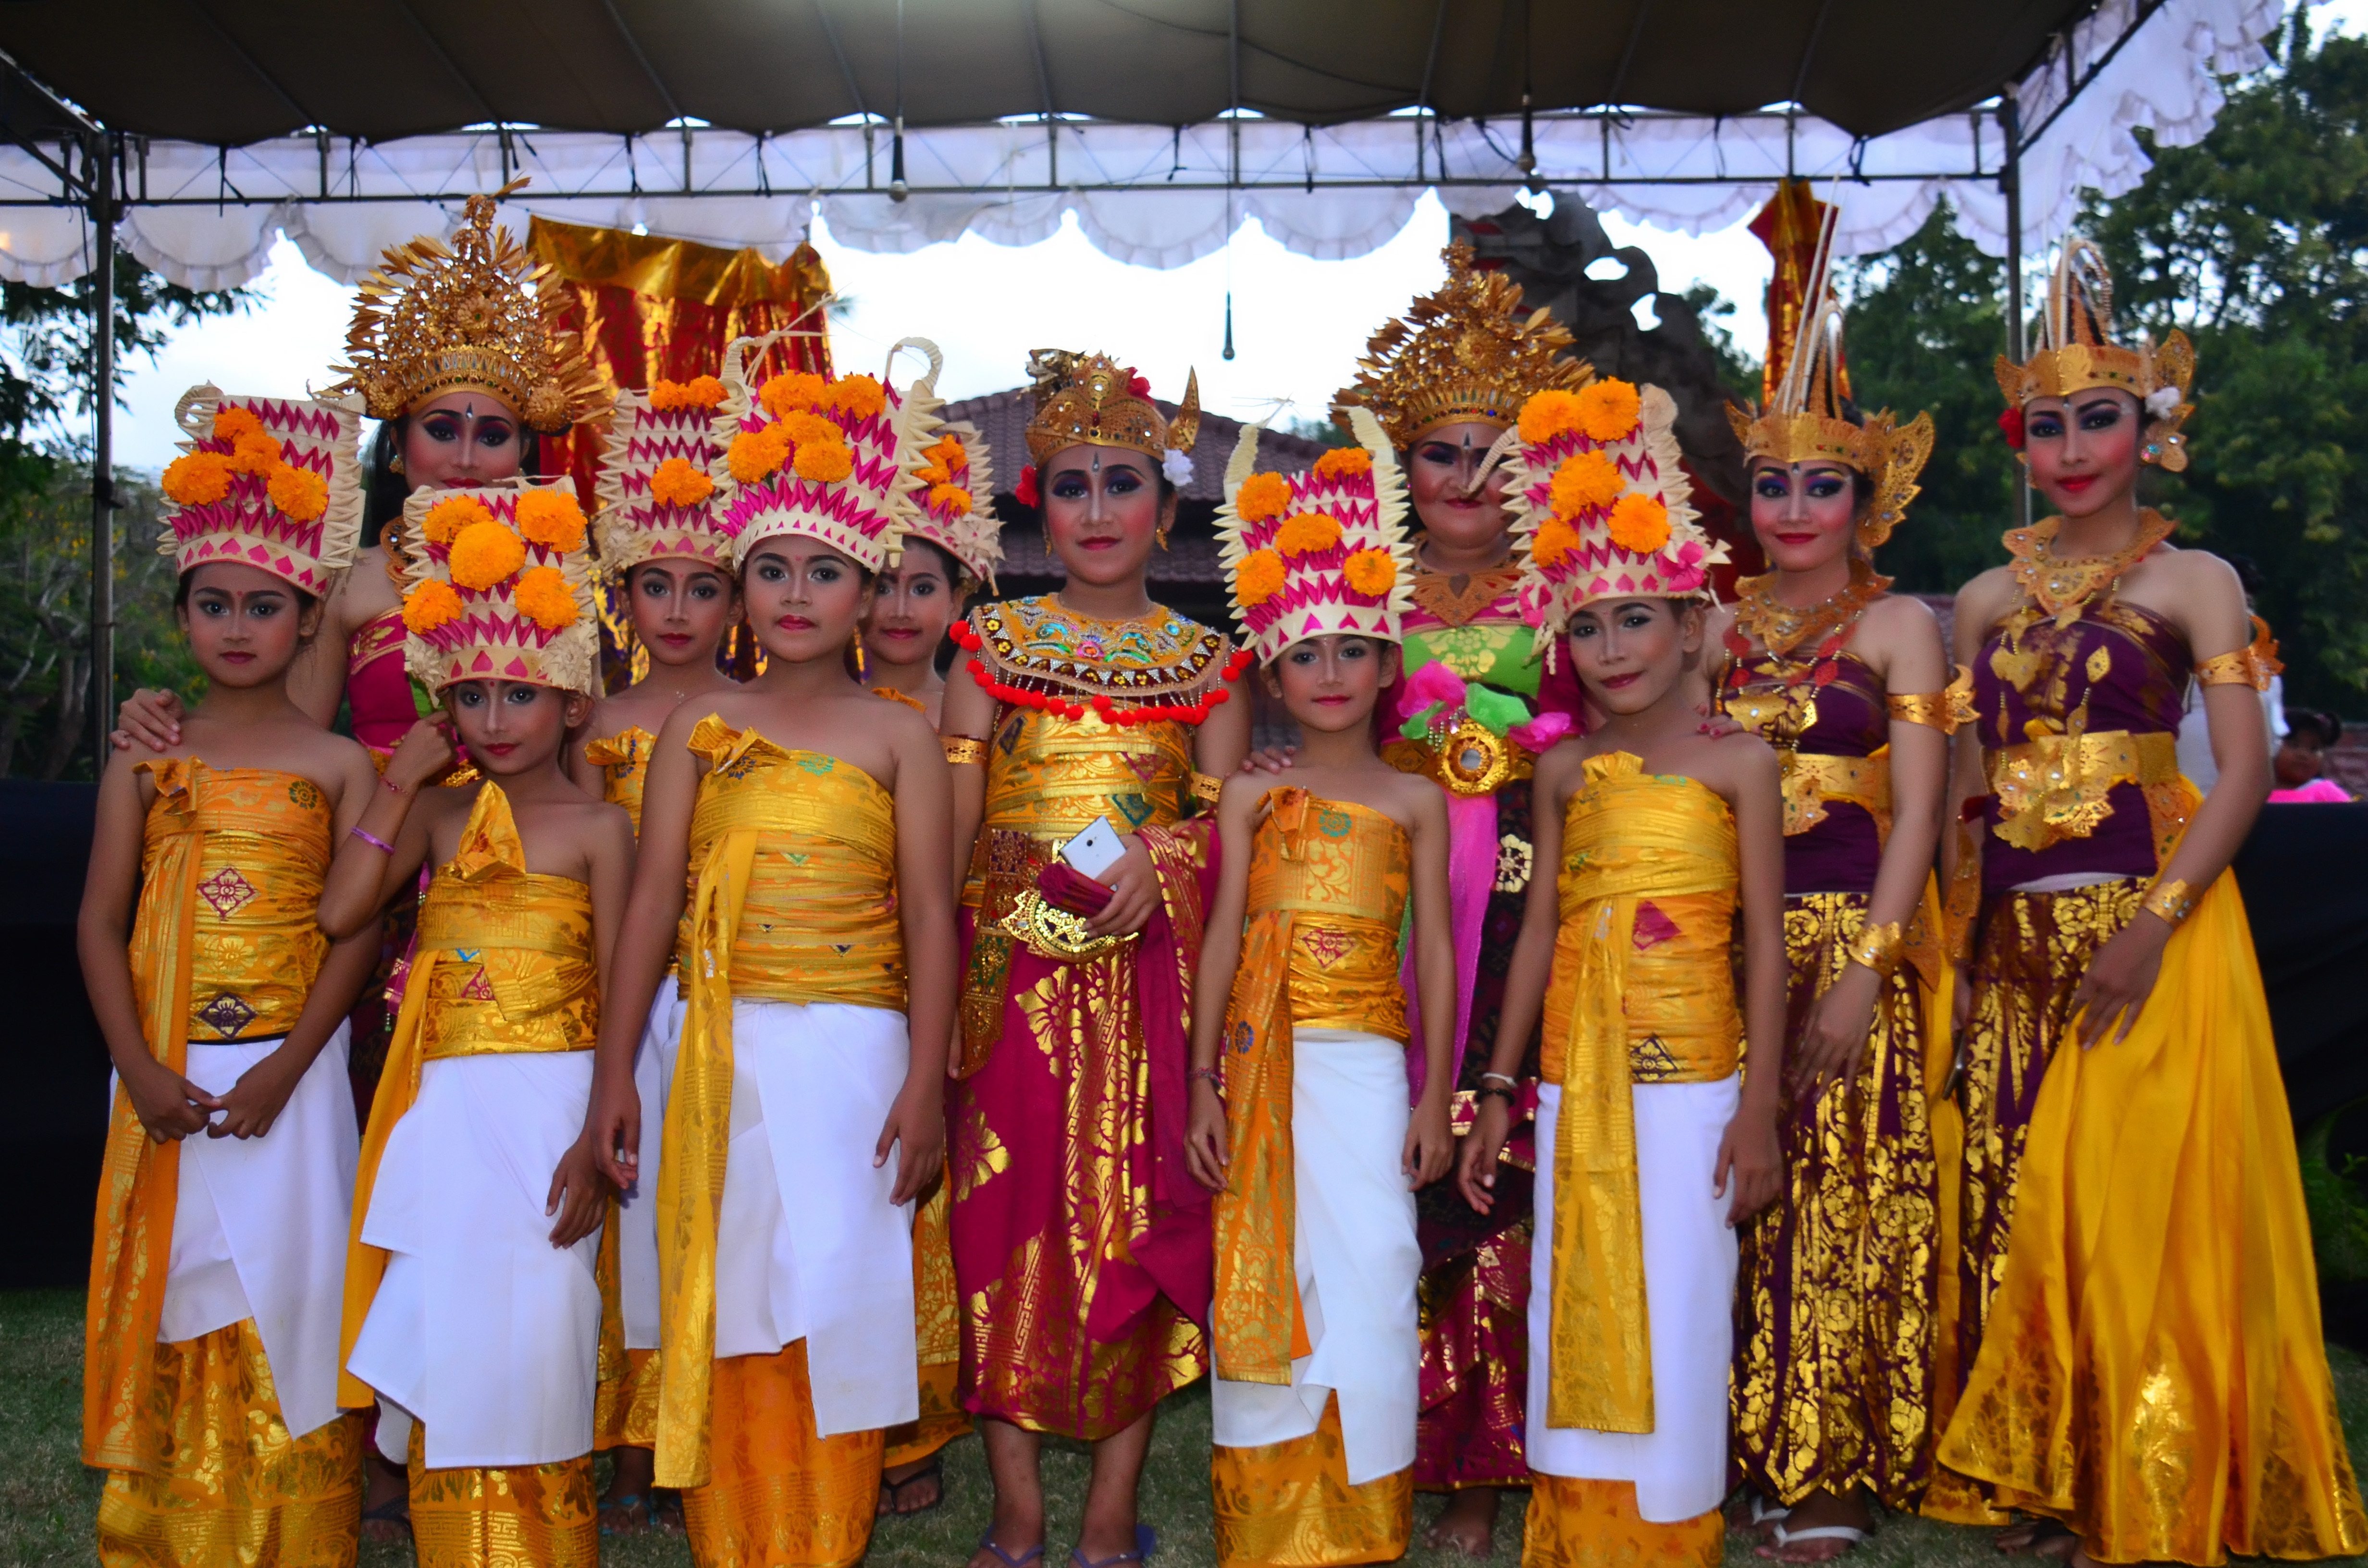 The Kids and the performer dressed in Balinese Traditional Clothes